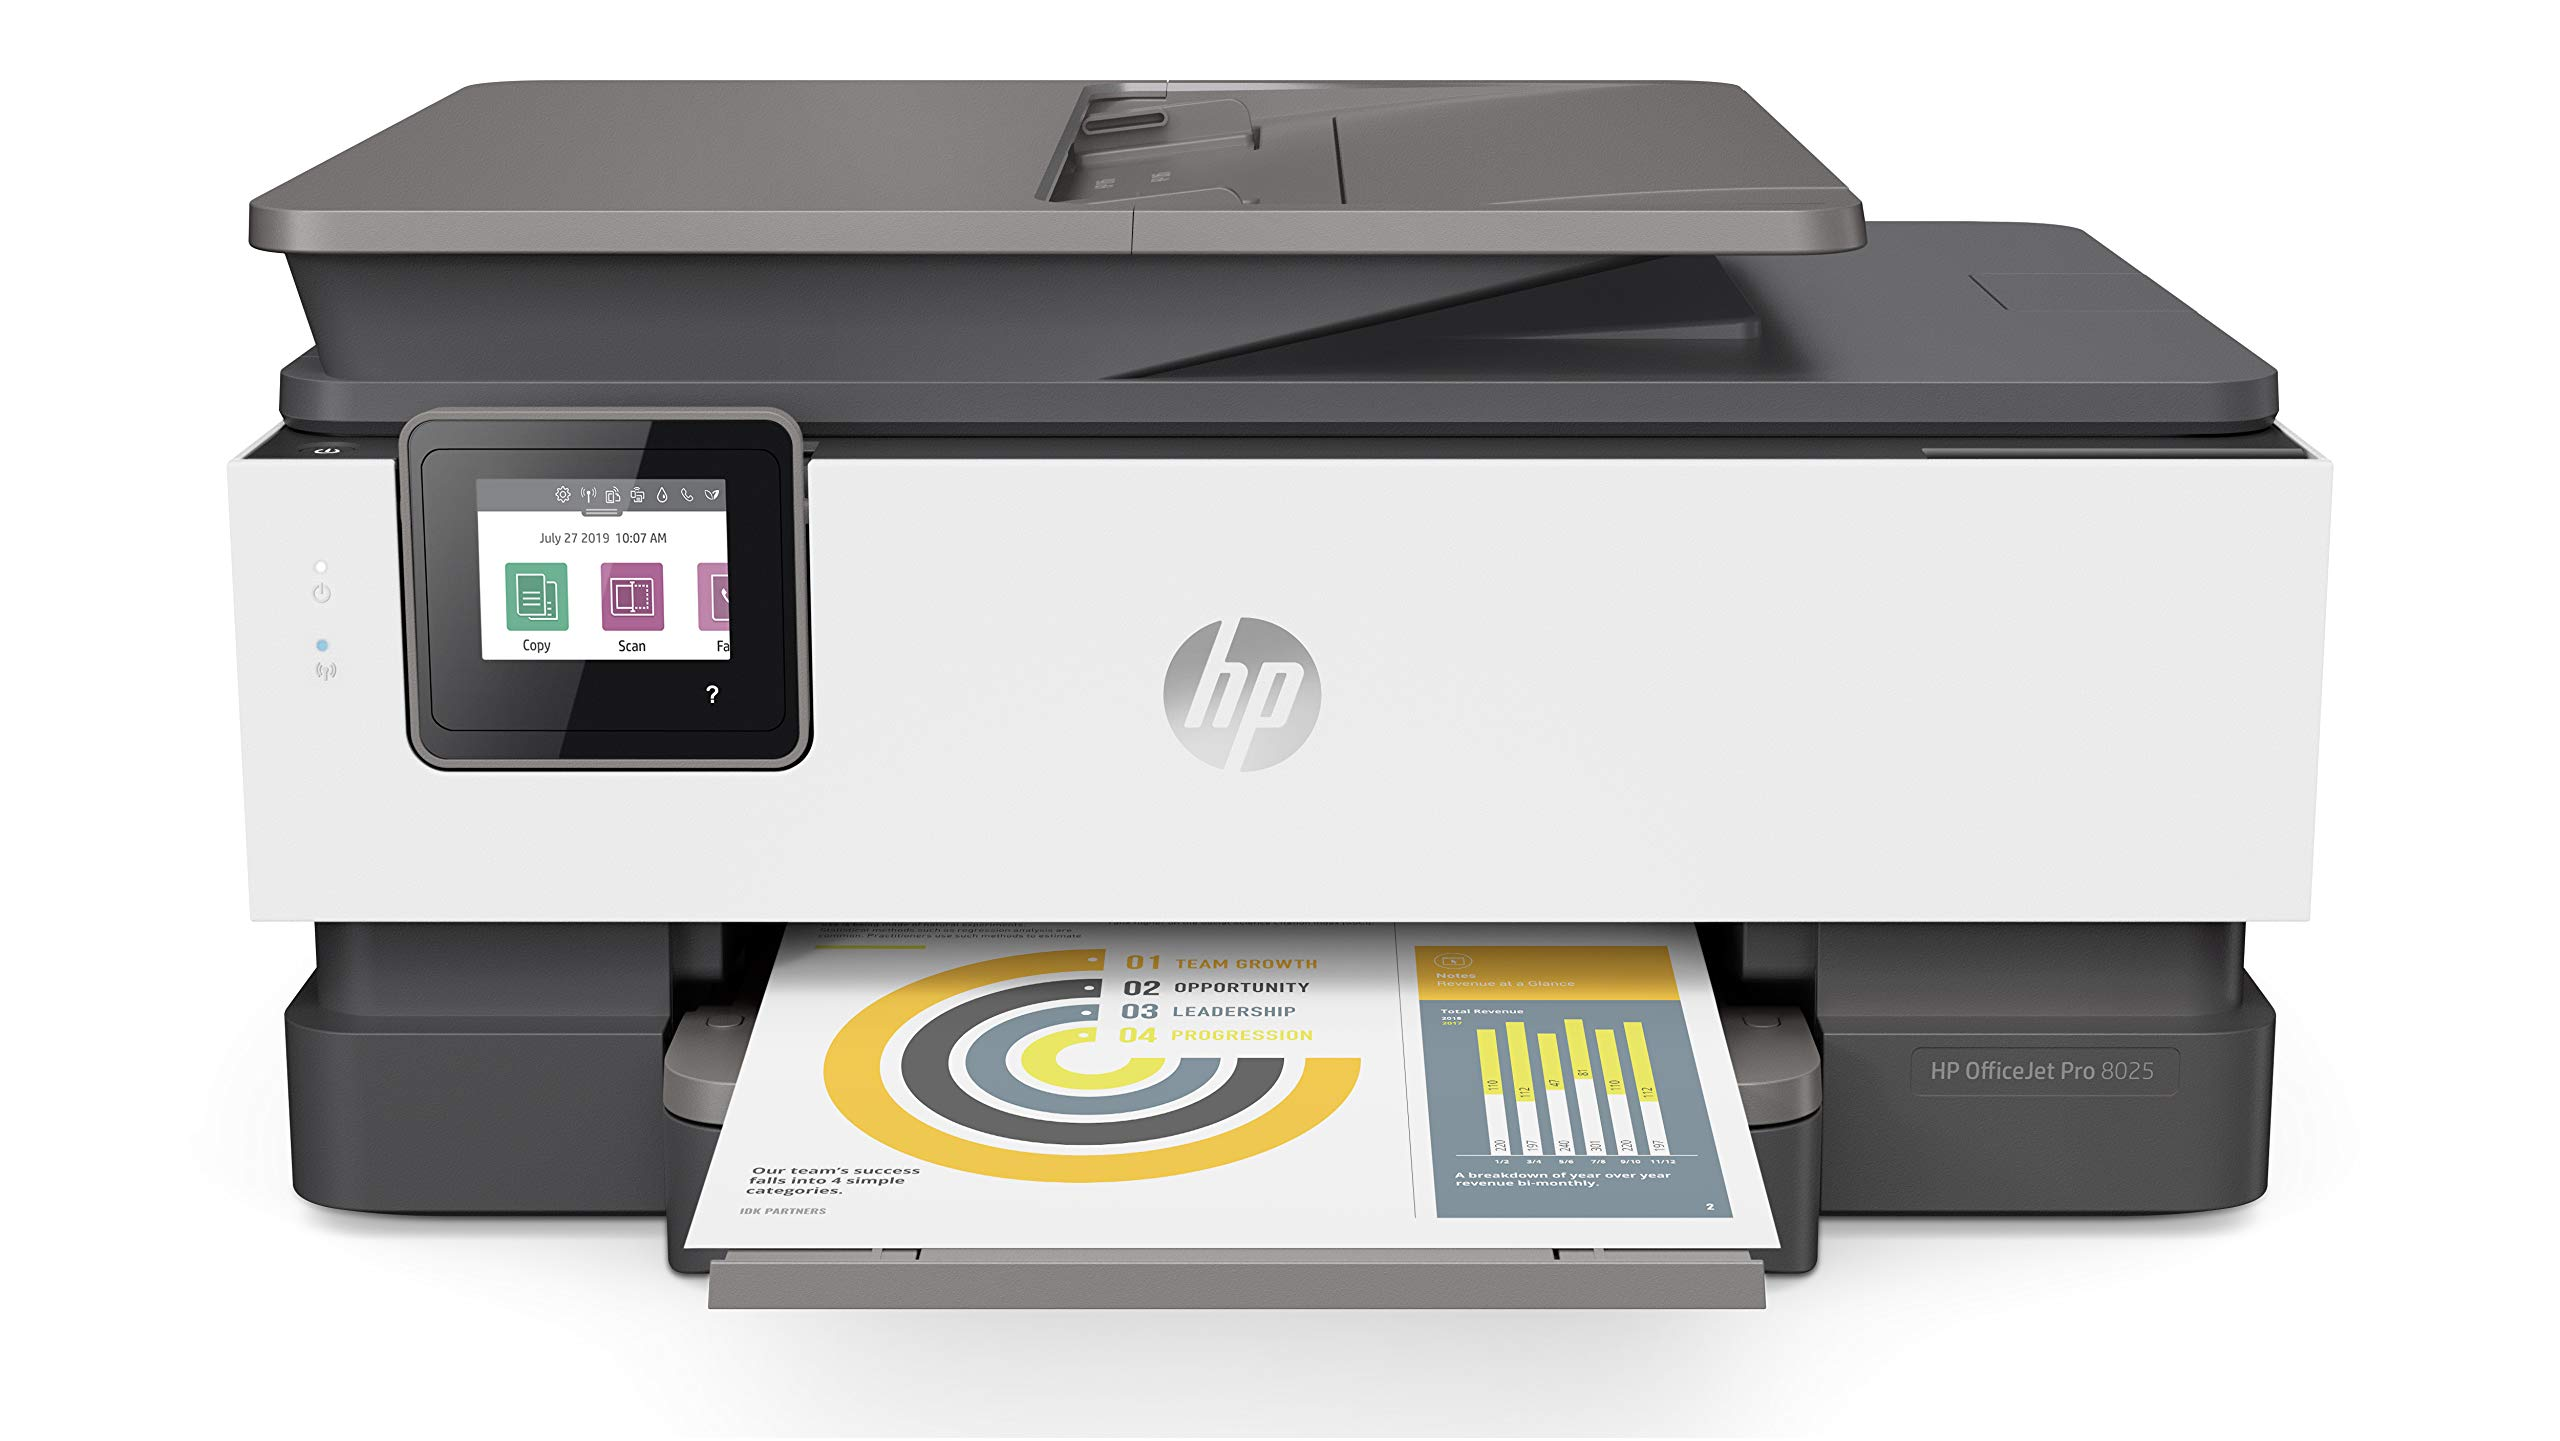 HP OfficeJet Pro 8025 All-in-One Wireless Printer, with Smart Tasks for Home Office Productivity, Instant Ink & Amazon Dash Replenishment Ready (1KR57A) by HP